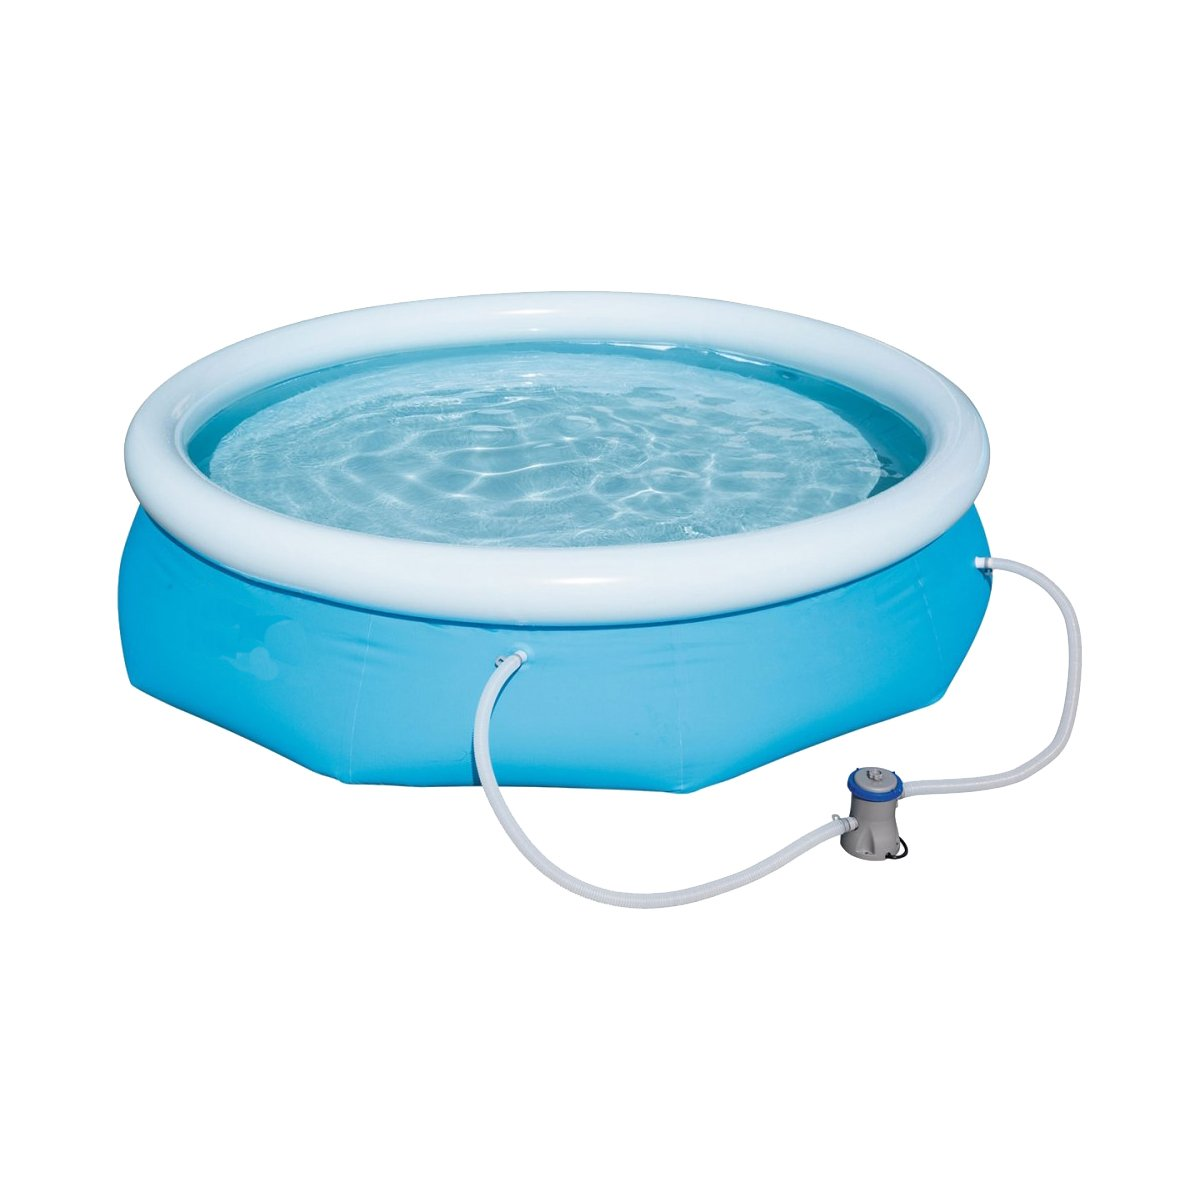 Dabuty Online, S.L. Piscina hinchable con filtro Best Way medidas 244 x 66 cm.: Amazon.es: Hogar